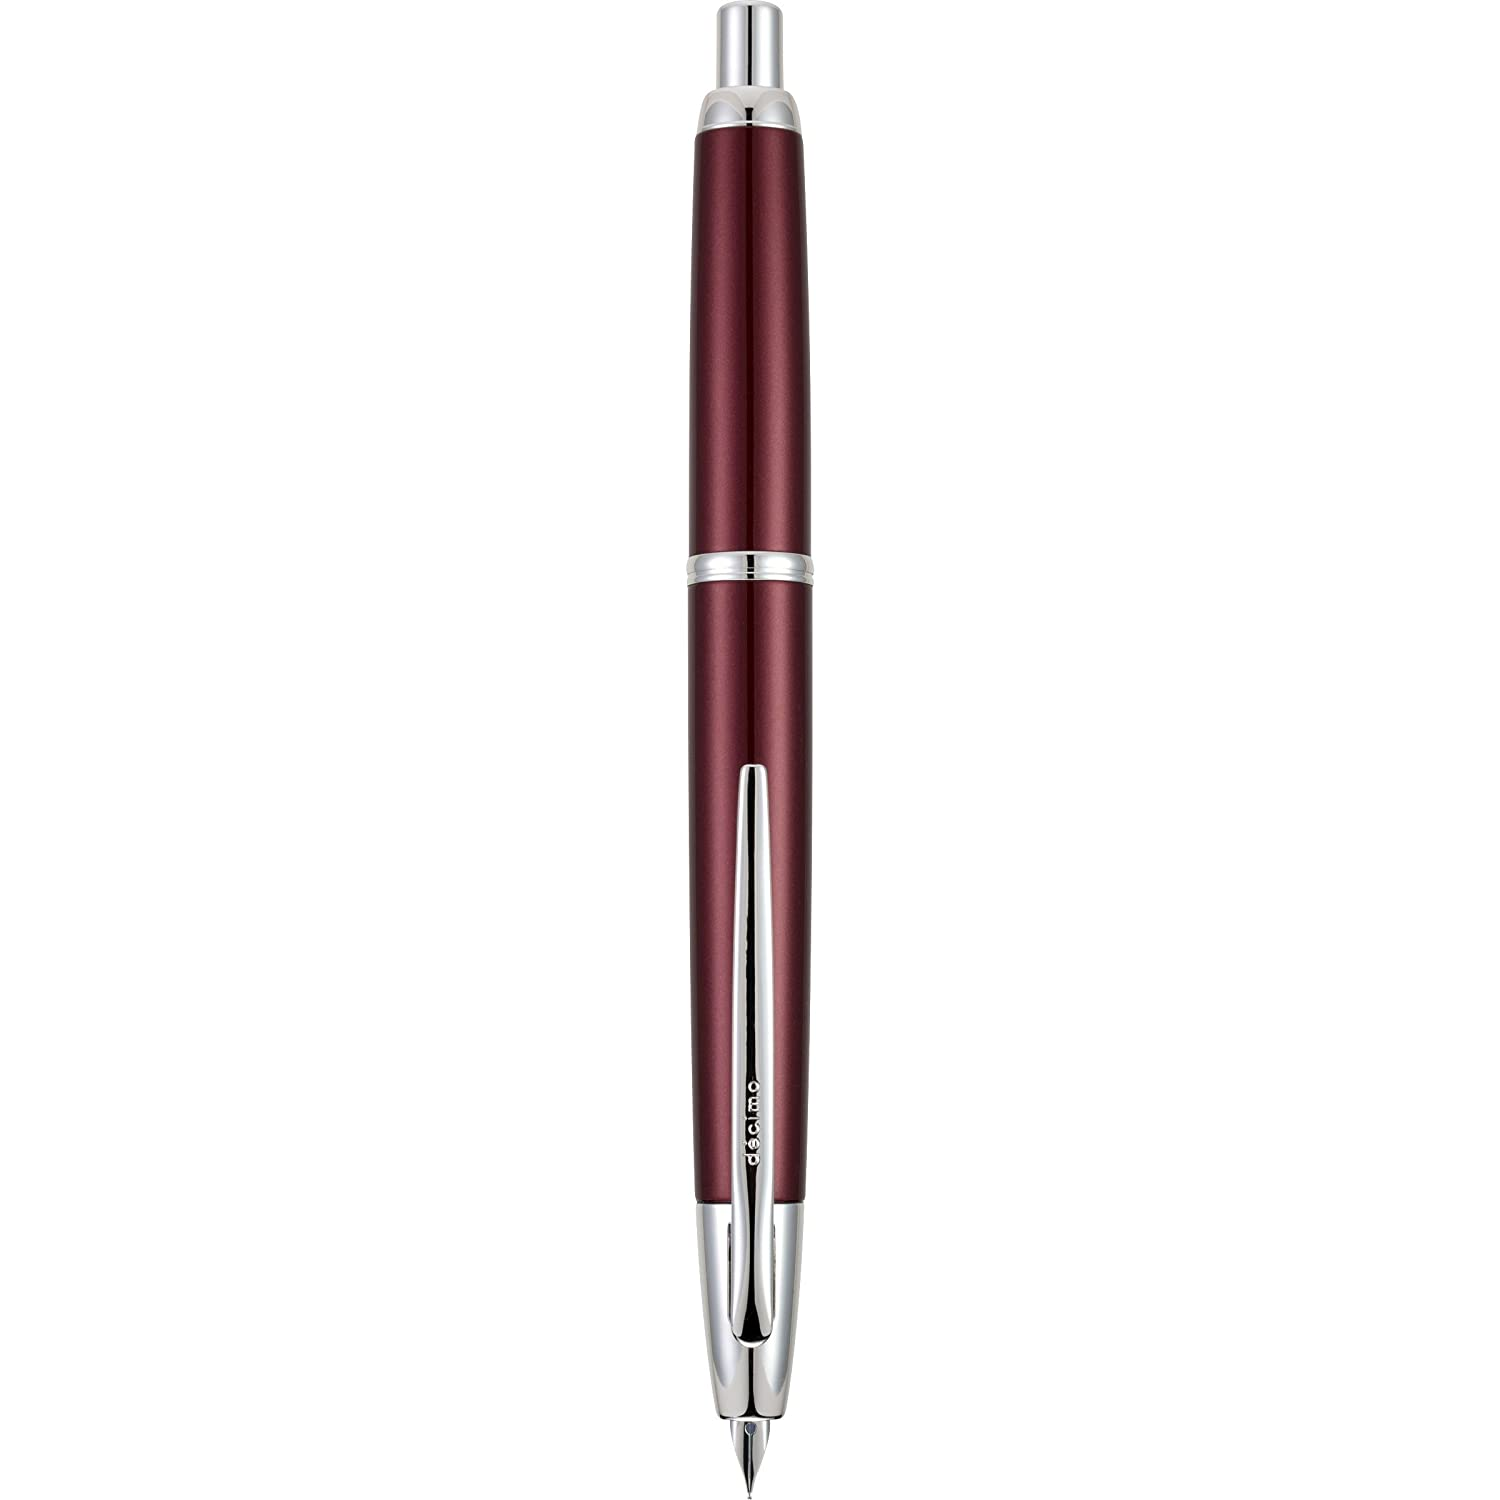 PILOT Vanishing Point Decimo Refillable & Retractable Fountain Pen, Burgundy Barrel with Rhodium Accents, Fine Nib (65338)